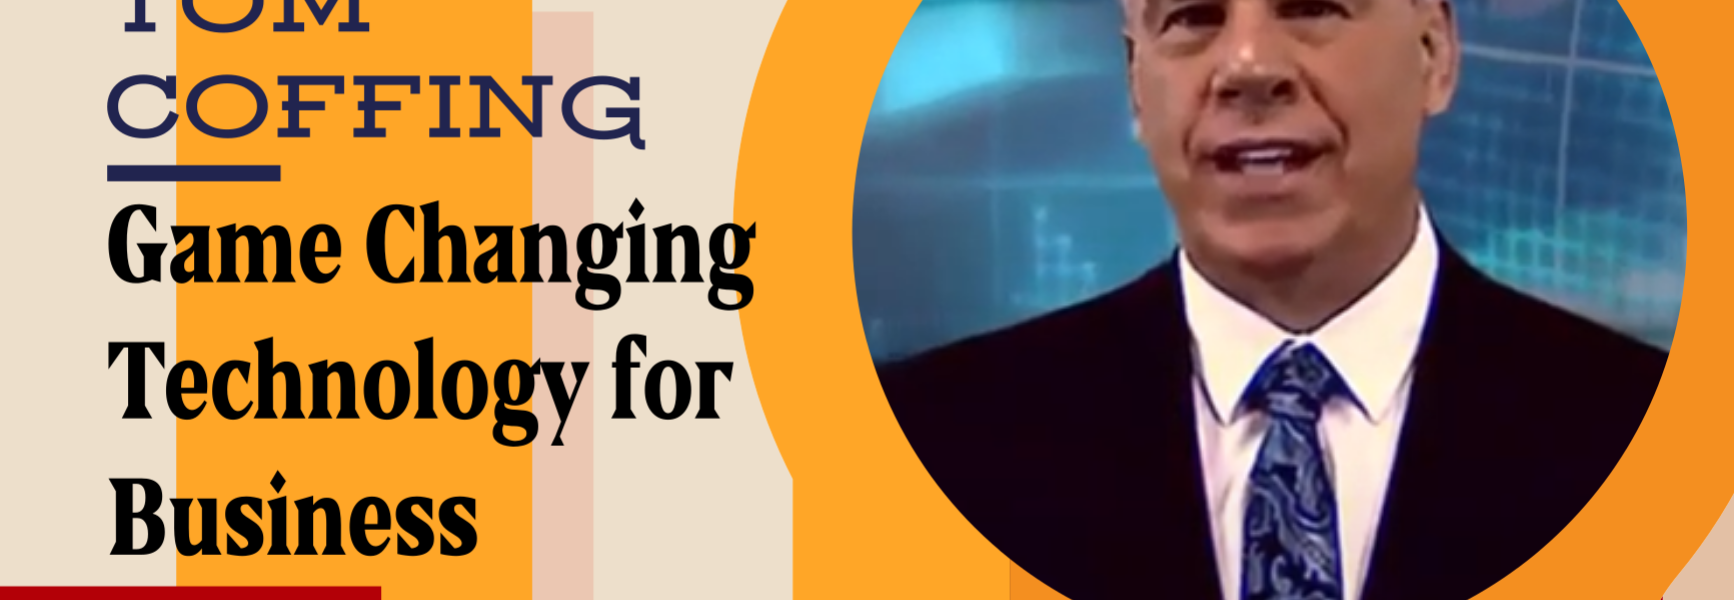 Game Changing Technology for Business with Tom Coffing